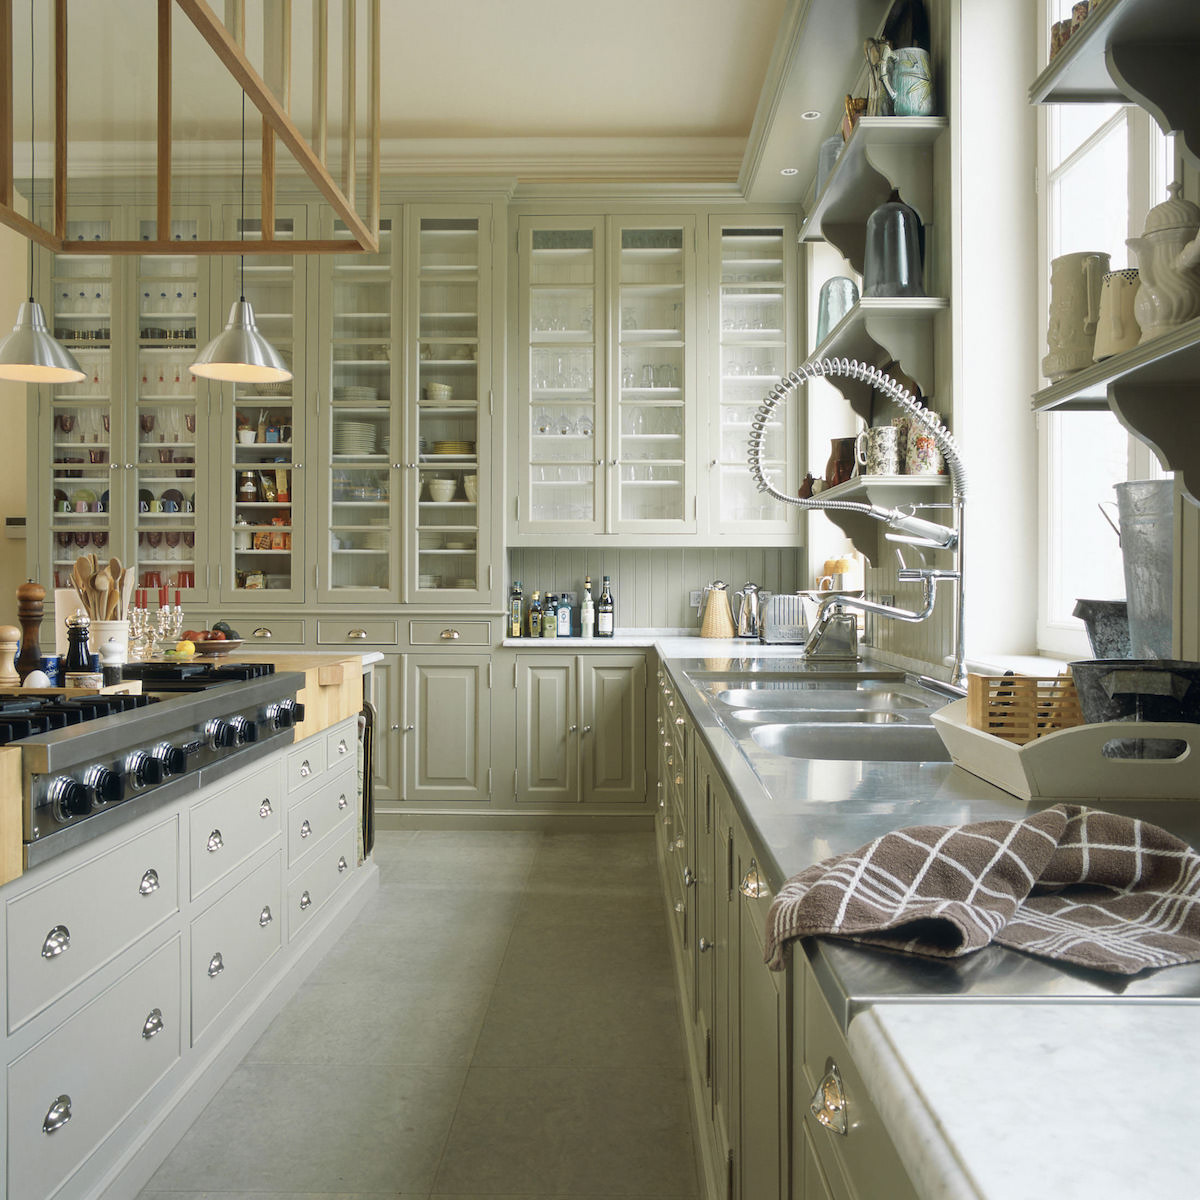 pale neutral kitchens - Light gray green Belgian kitchen with tall wall storage cabinets and a large island - Baden Baden via Atticmag